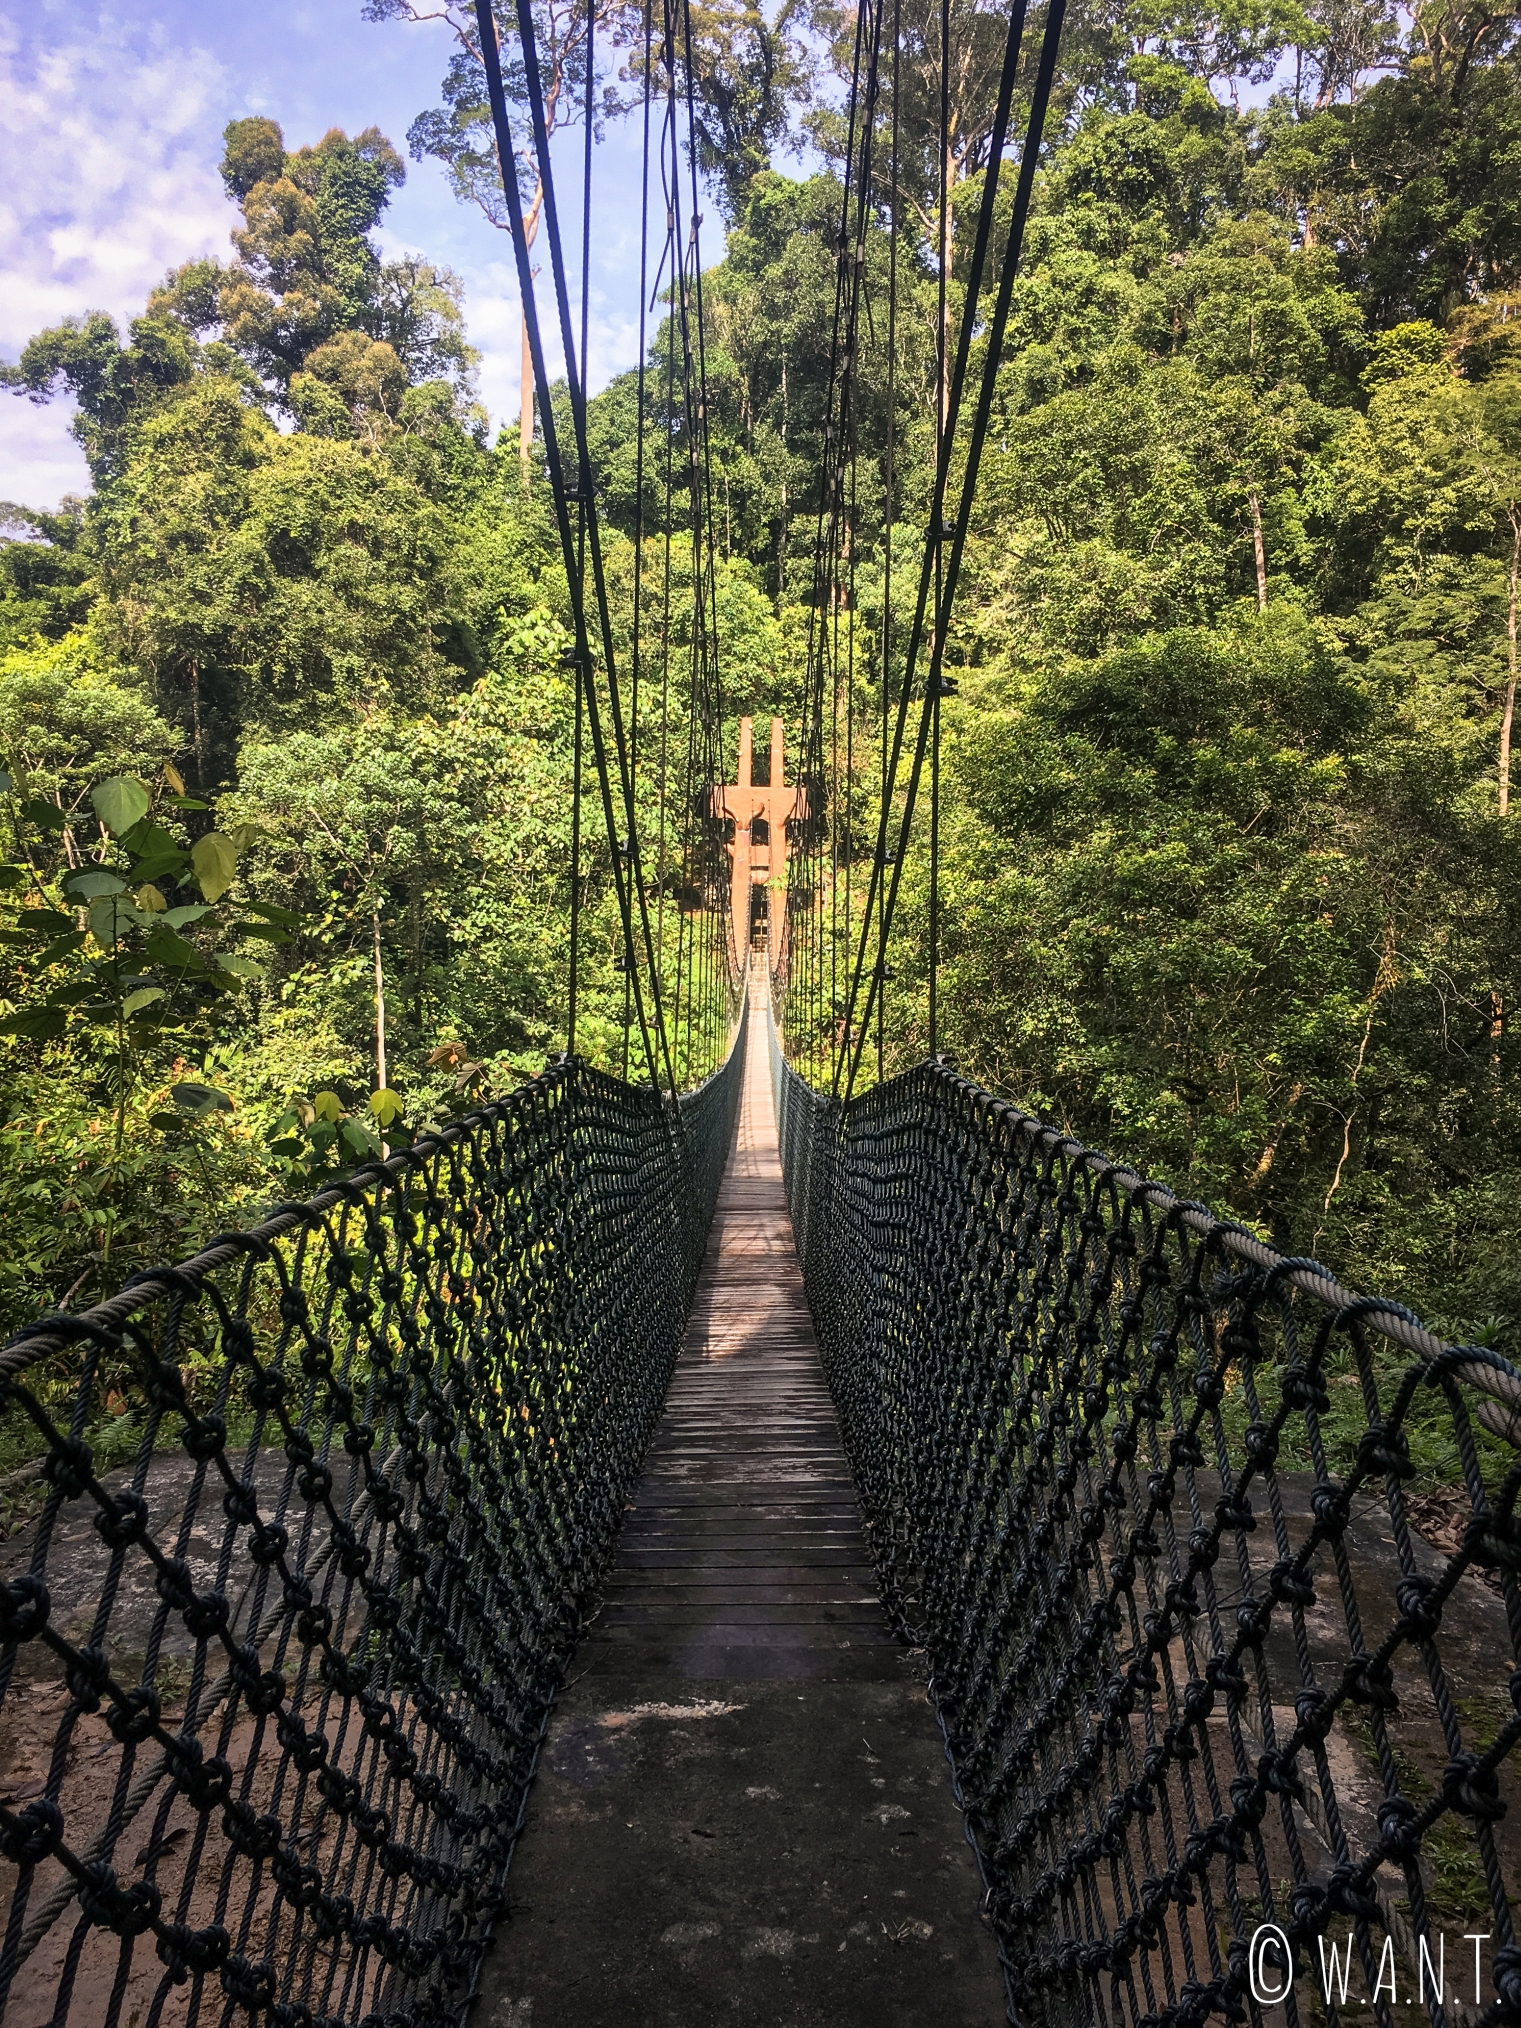 L'un des ponts suspendus au Parc national Ulu Temburong au Brunei